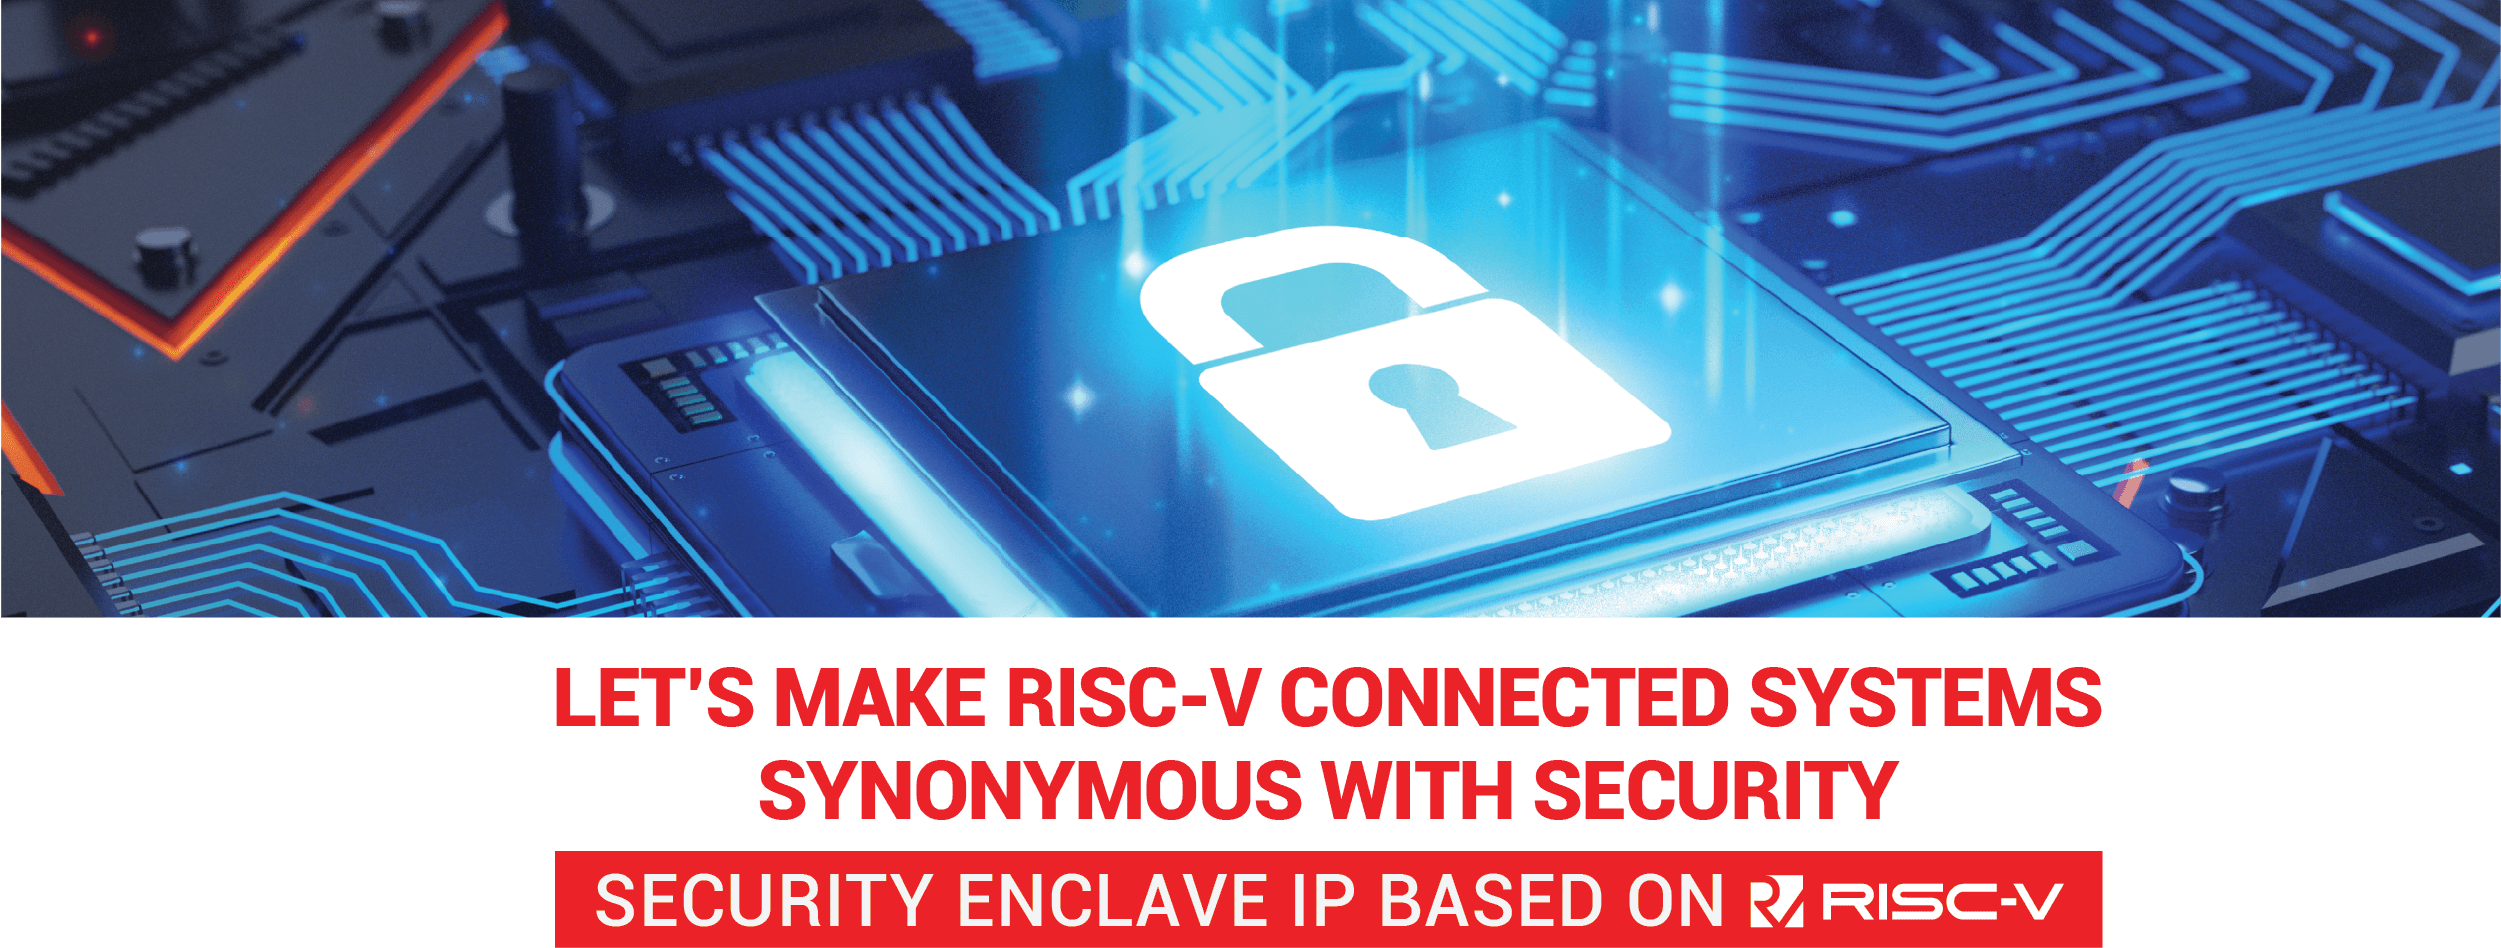 Let's Make RISC-V Connected Systems Synonymous with Security